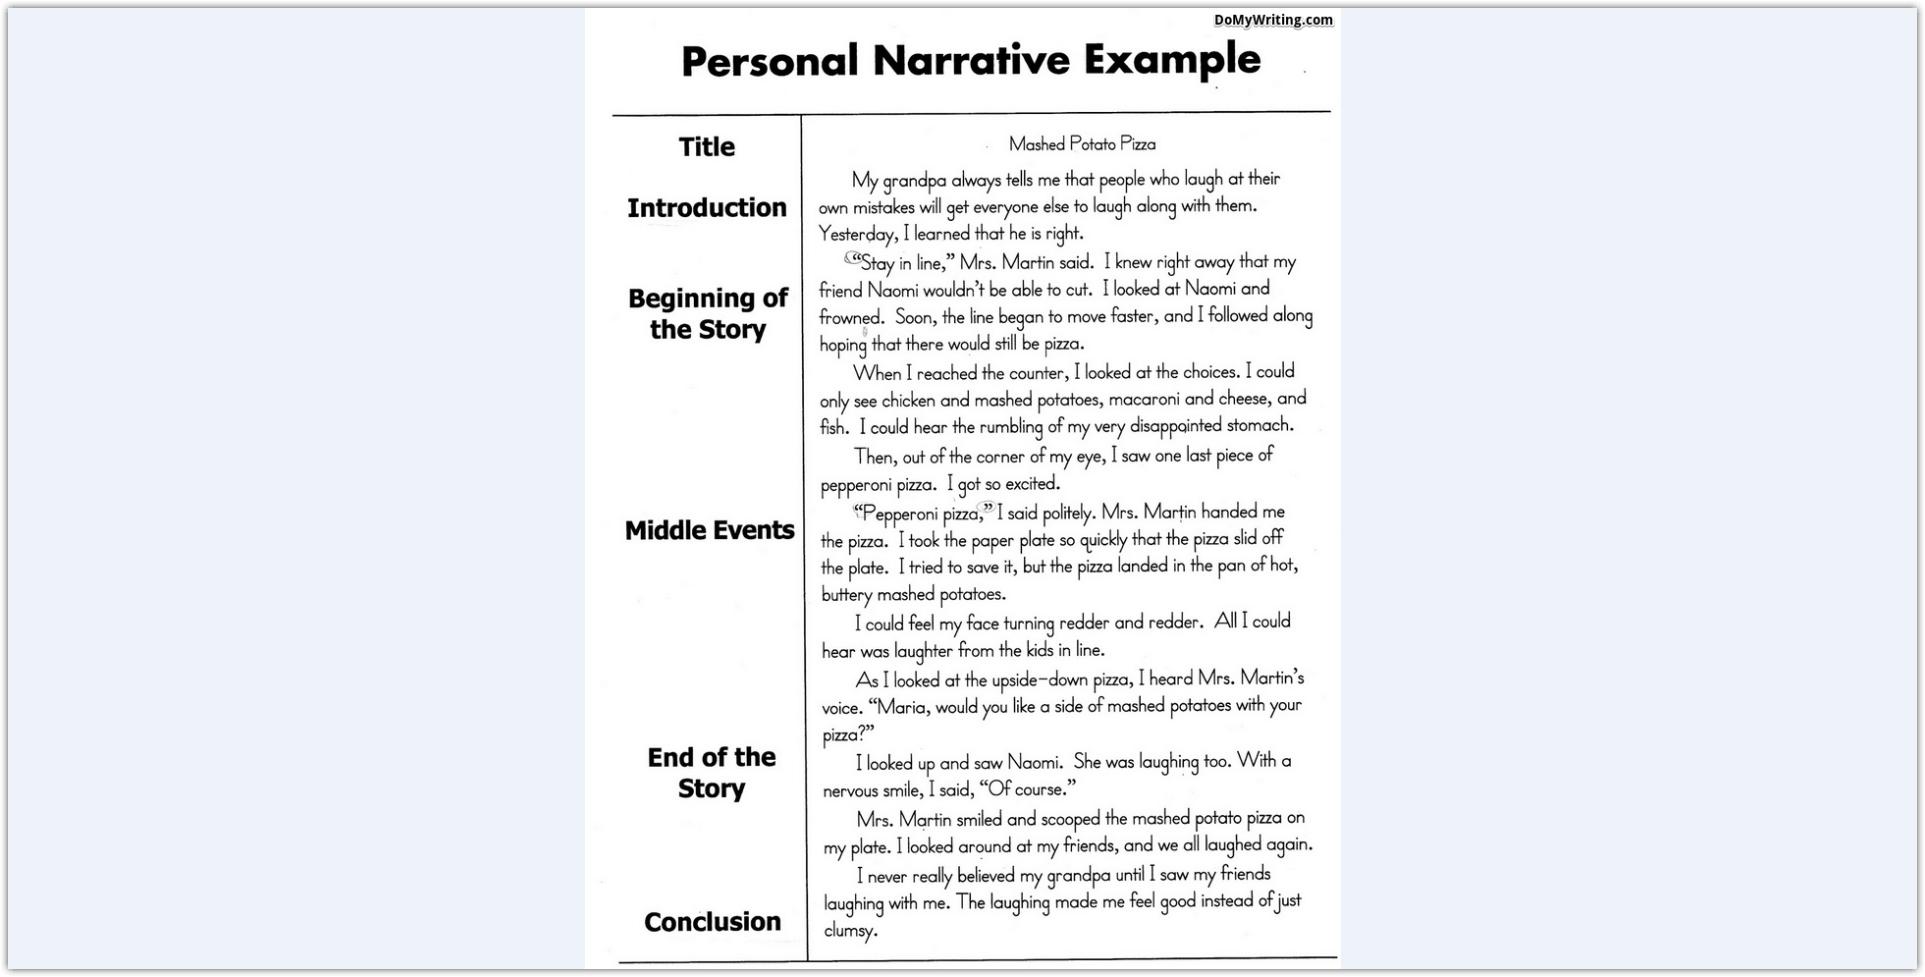 010 Narrative Essay Example Surprising Examples Writing Tips Pdf College Full